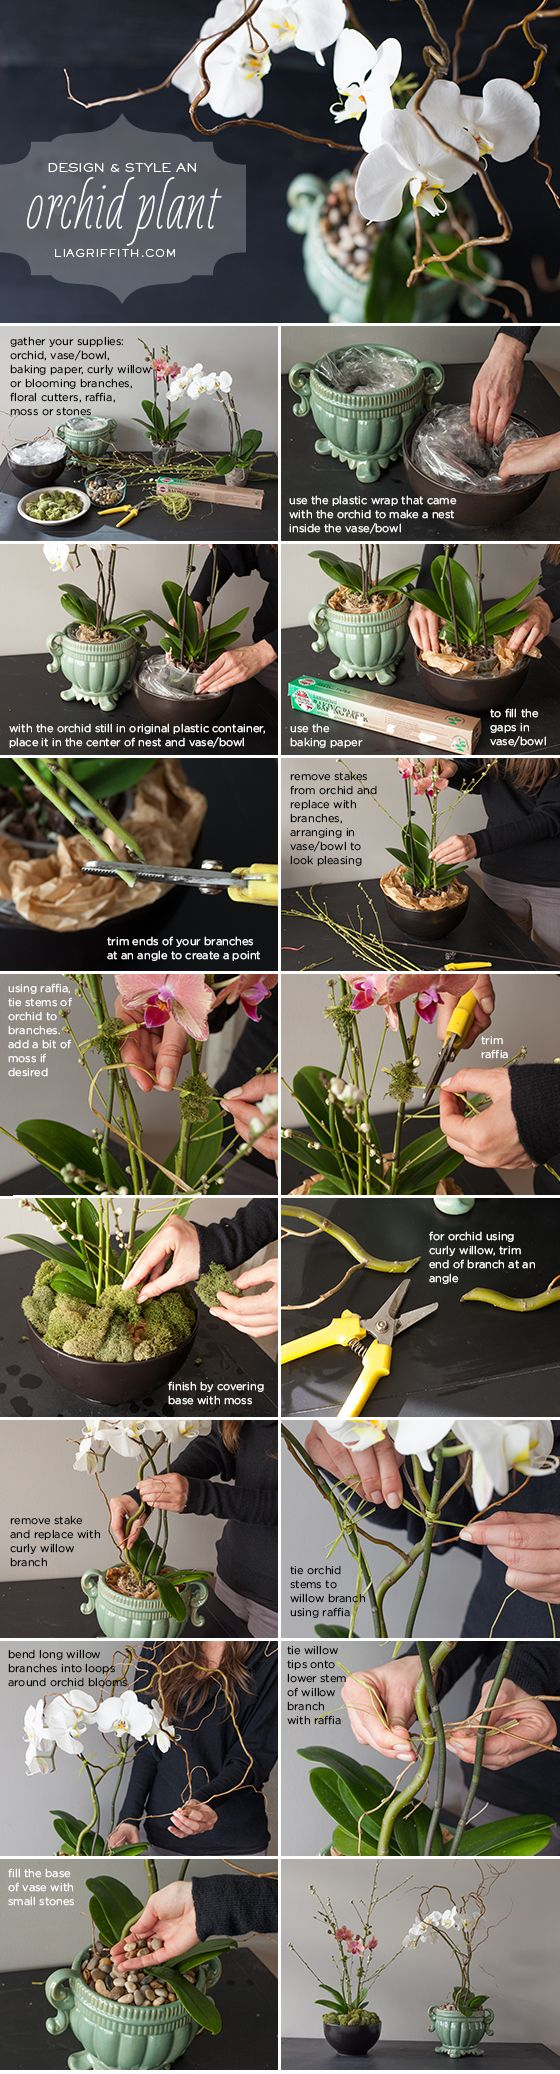 Use this easy step-by-step tutorial to style a grocery store orchid into a floral shop design.